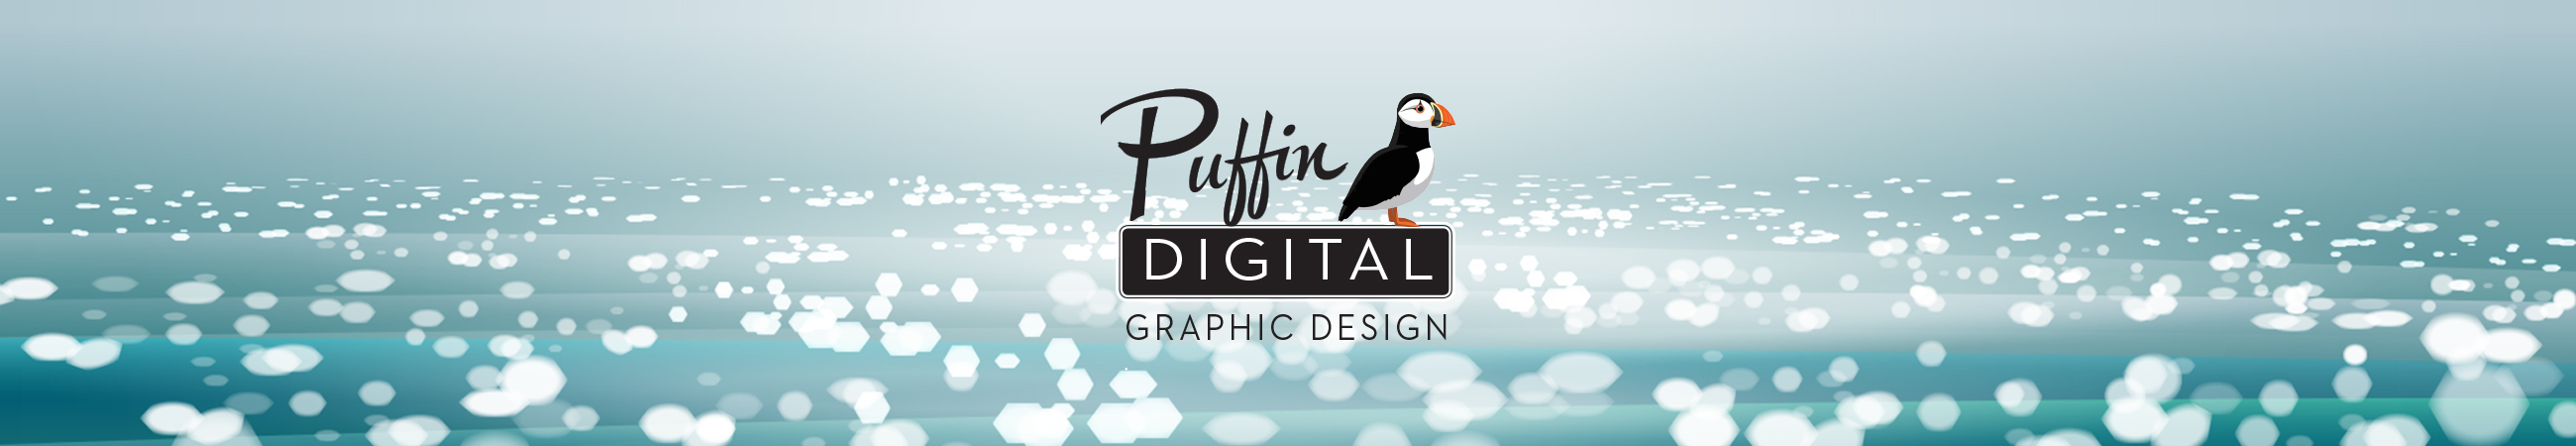 Puffin Digital Graphic Design Dartmouth Devon